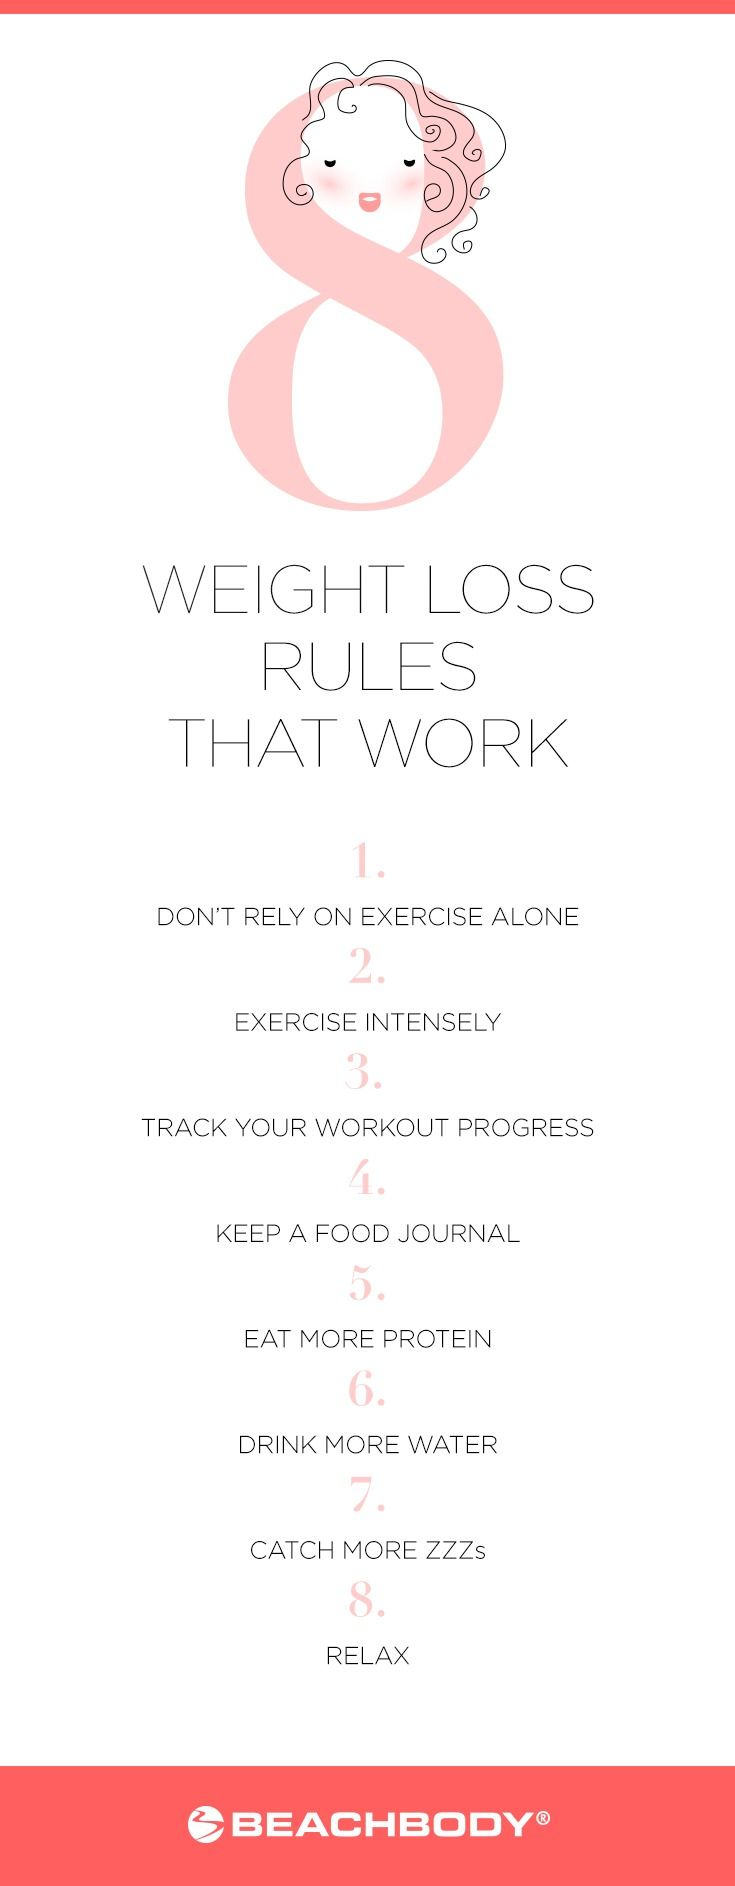 Want to know how to lose weight? Start with the following eight weight loss rules that work. They're proven by science to not only help you shed fat fast, but also keep it off for good. // weight loss // work out // workout // healthy living // clean eating // sleep // relax // drink water // exercise // Beachbody // BeachbodyBlog.com